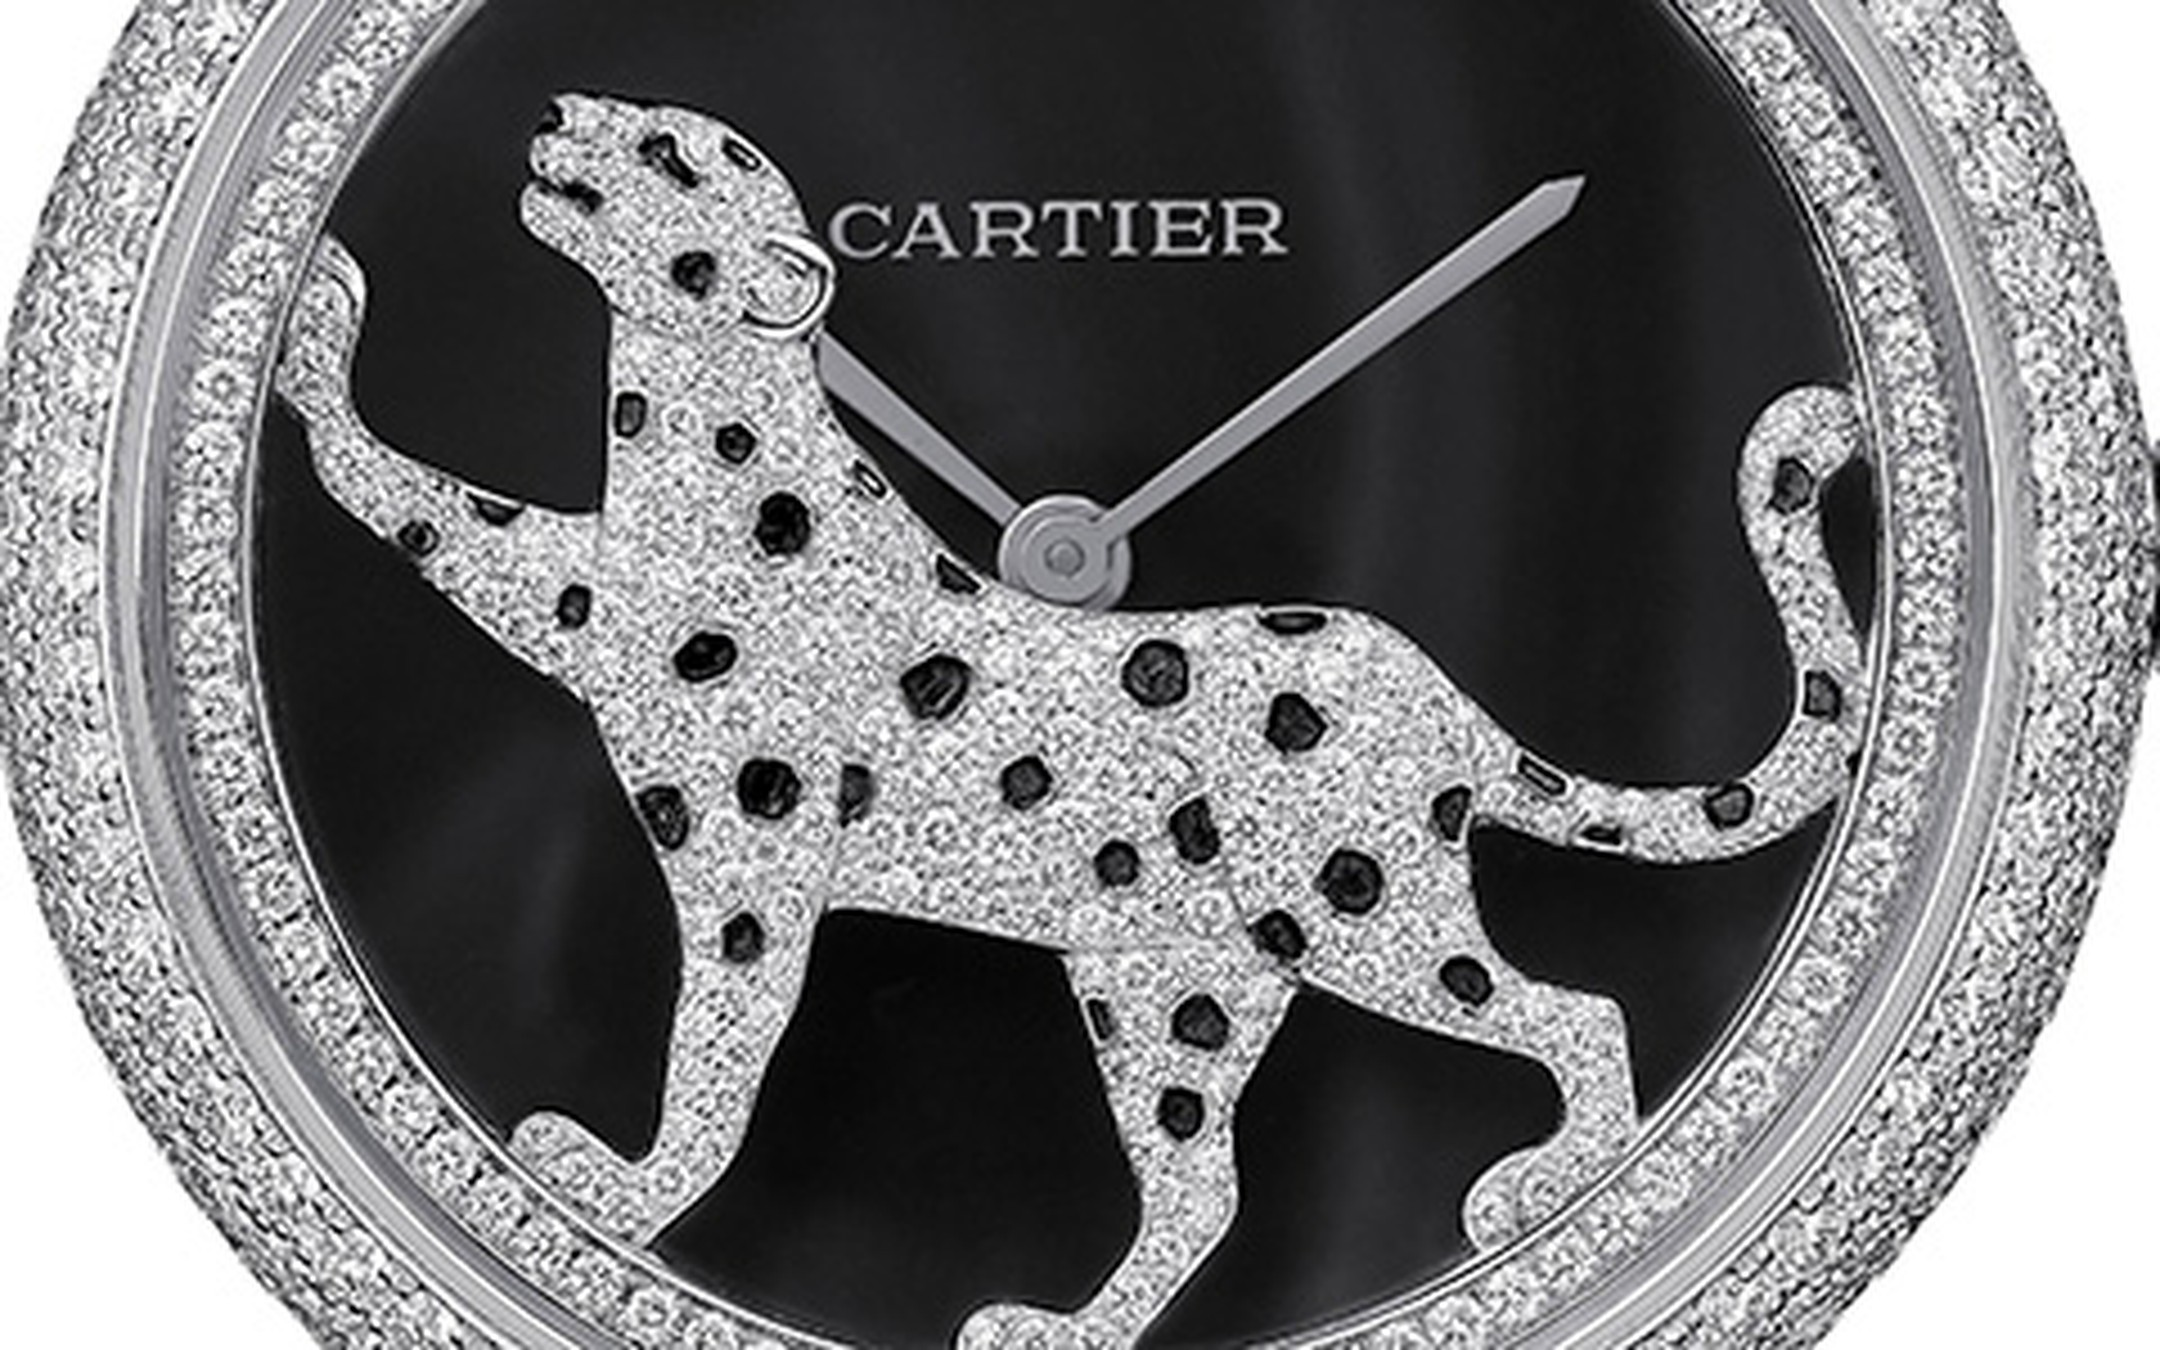 SIHH 2012 Cartier Panthere high jewellery watch Dial detail